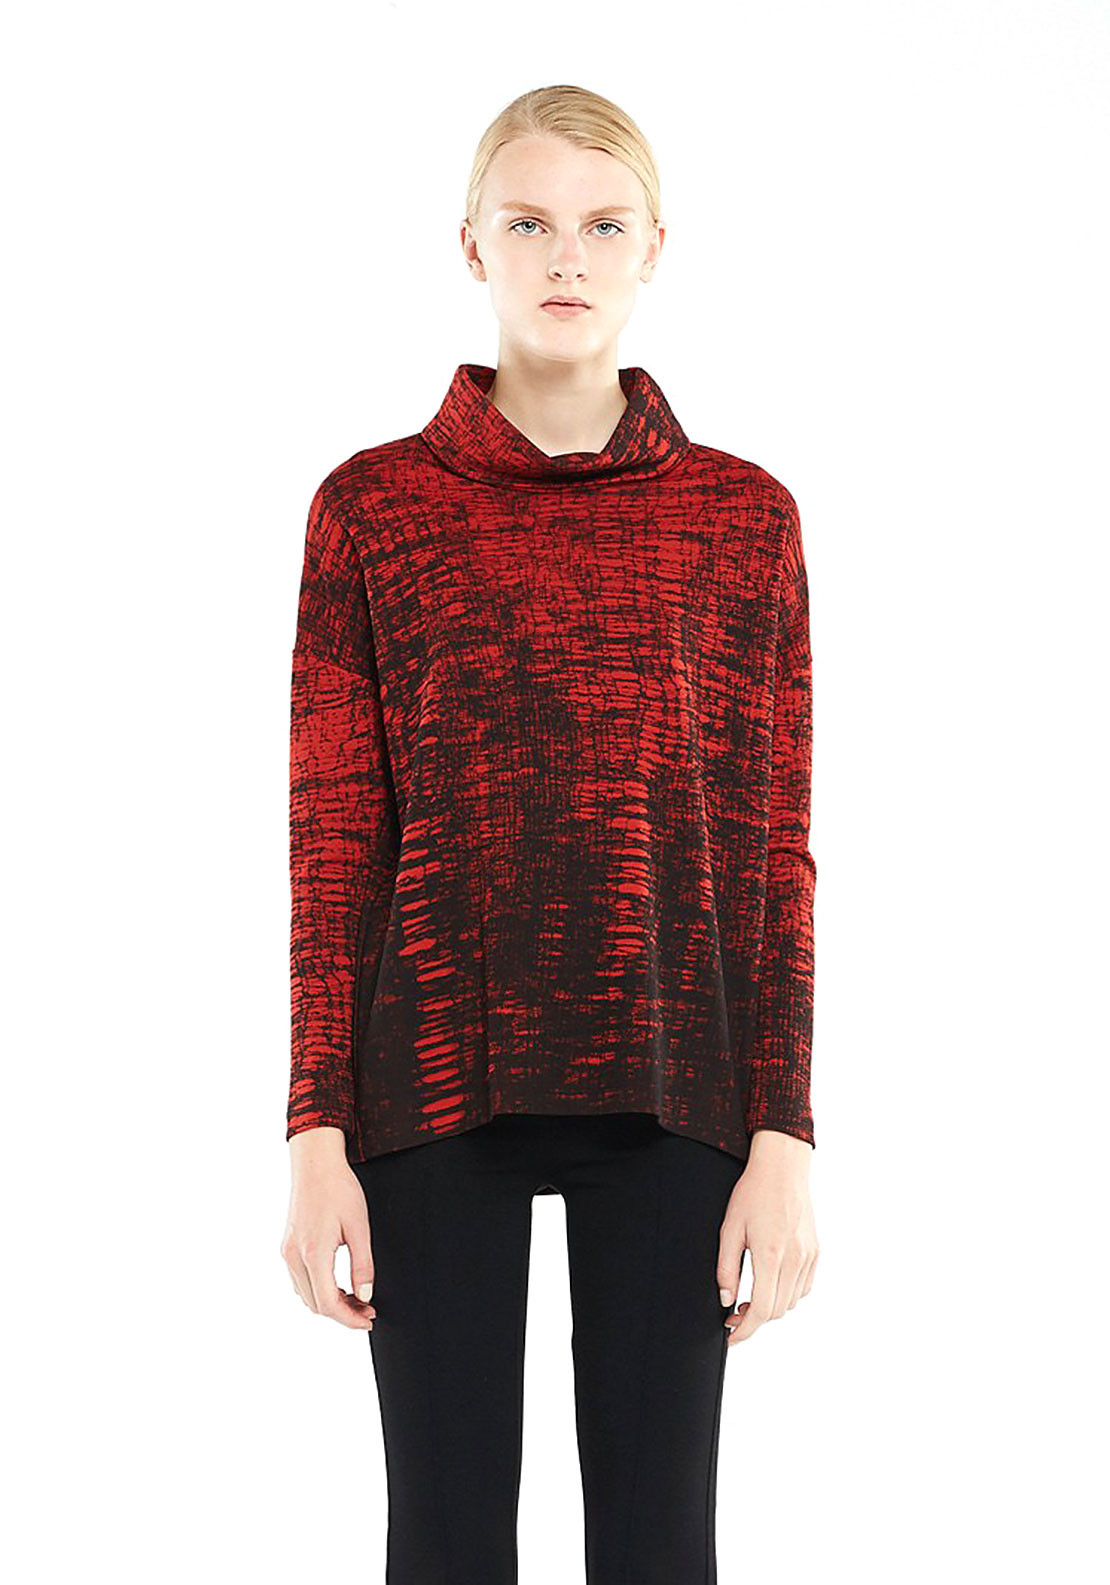 Isabel de Pedro Printed Turtle Neck Jersey Sweater Jumper, Red and Black